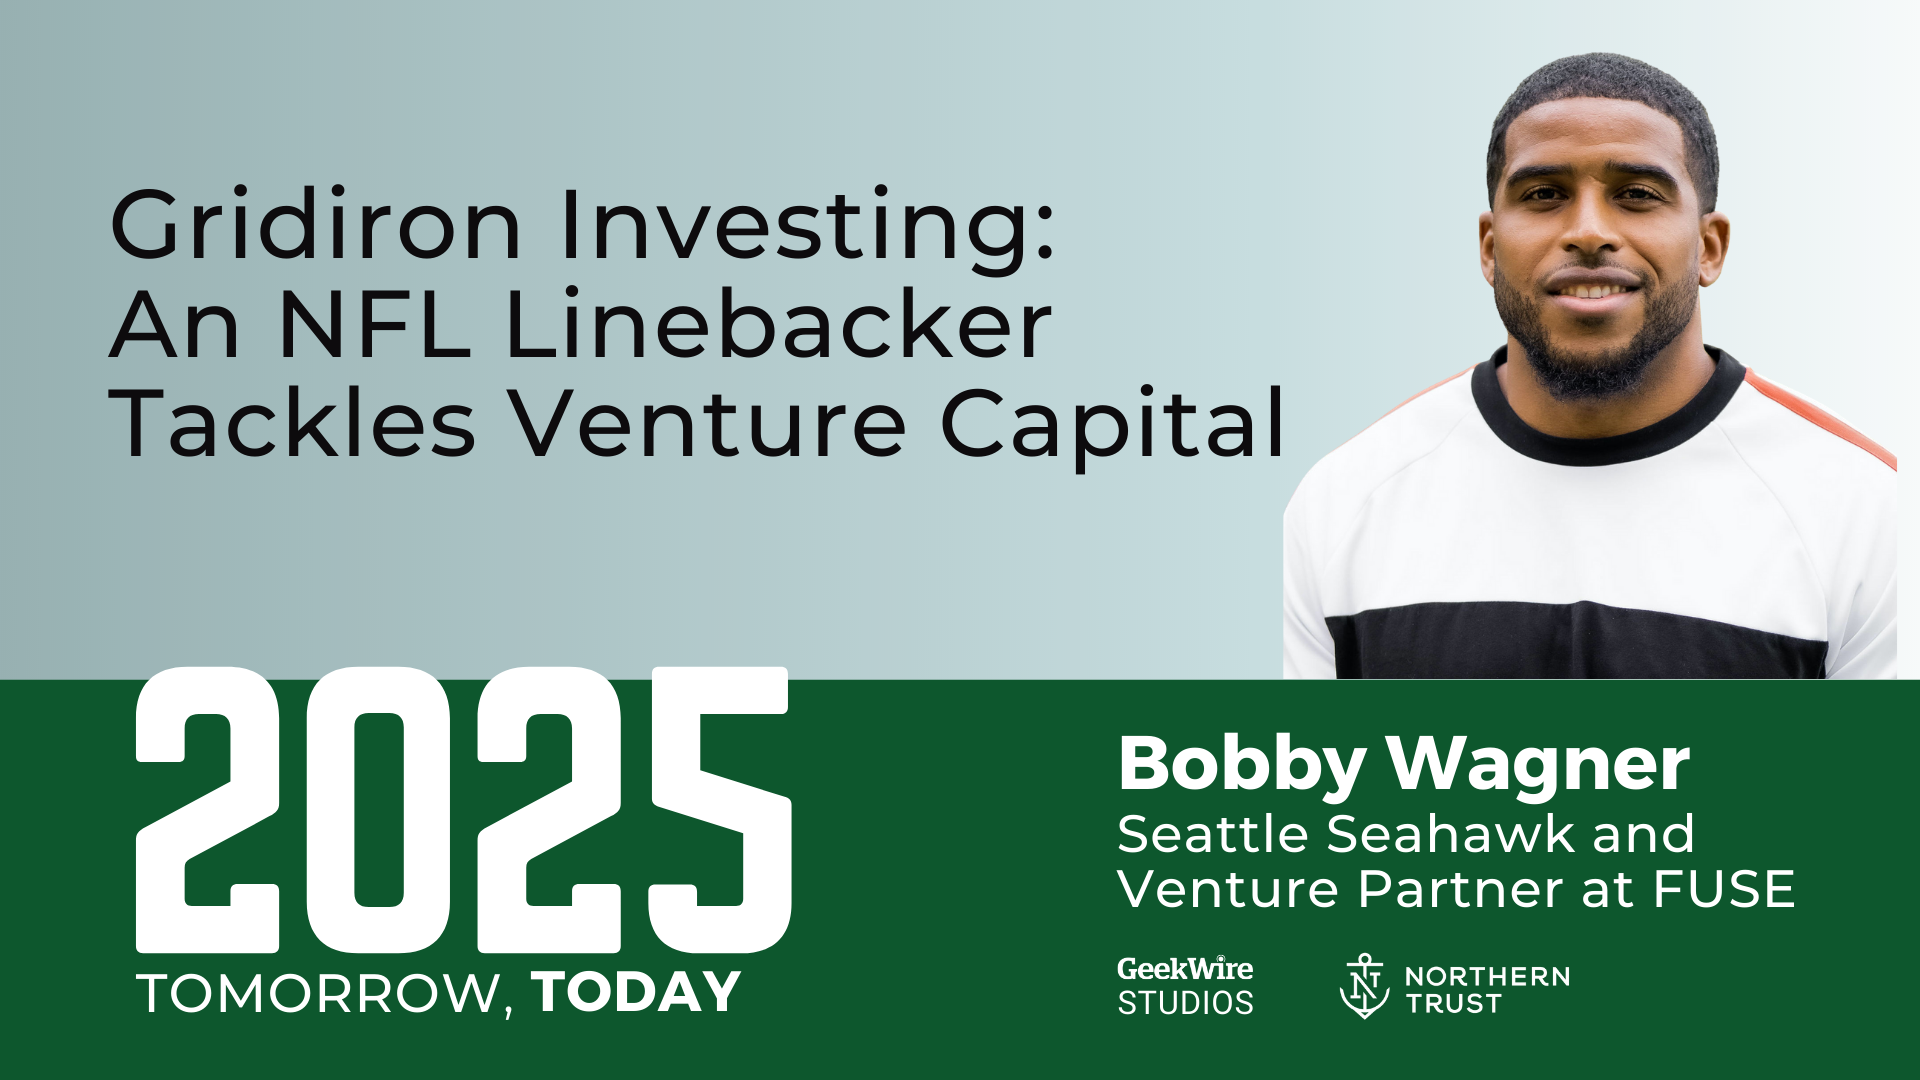 Seattle Seahawks star Bobby Wagner on tackling venture capital and business lessons from the field